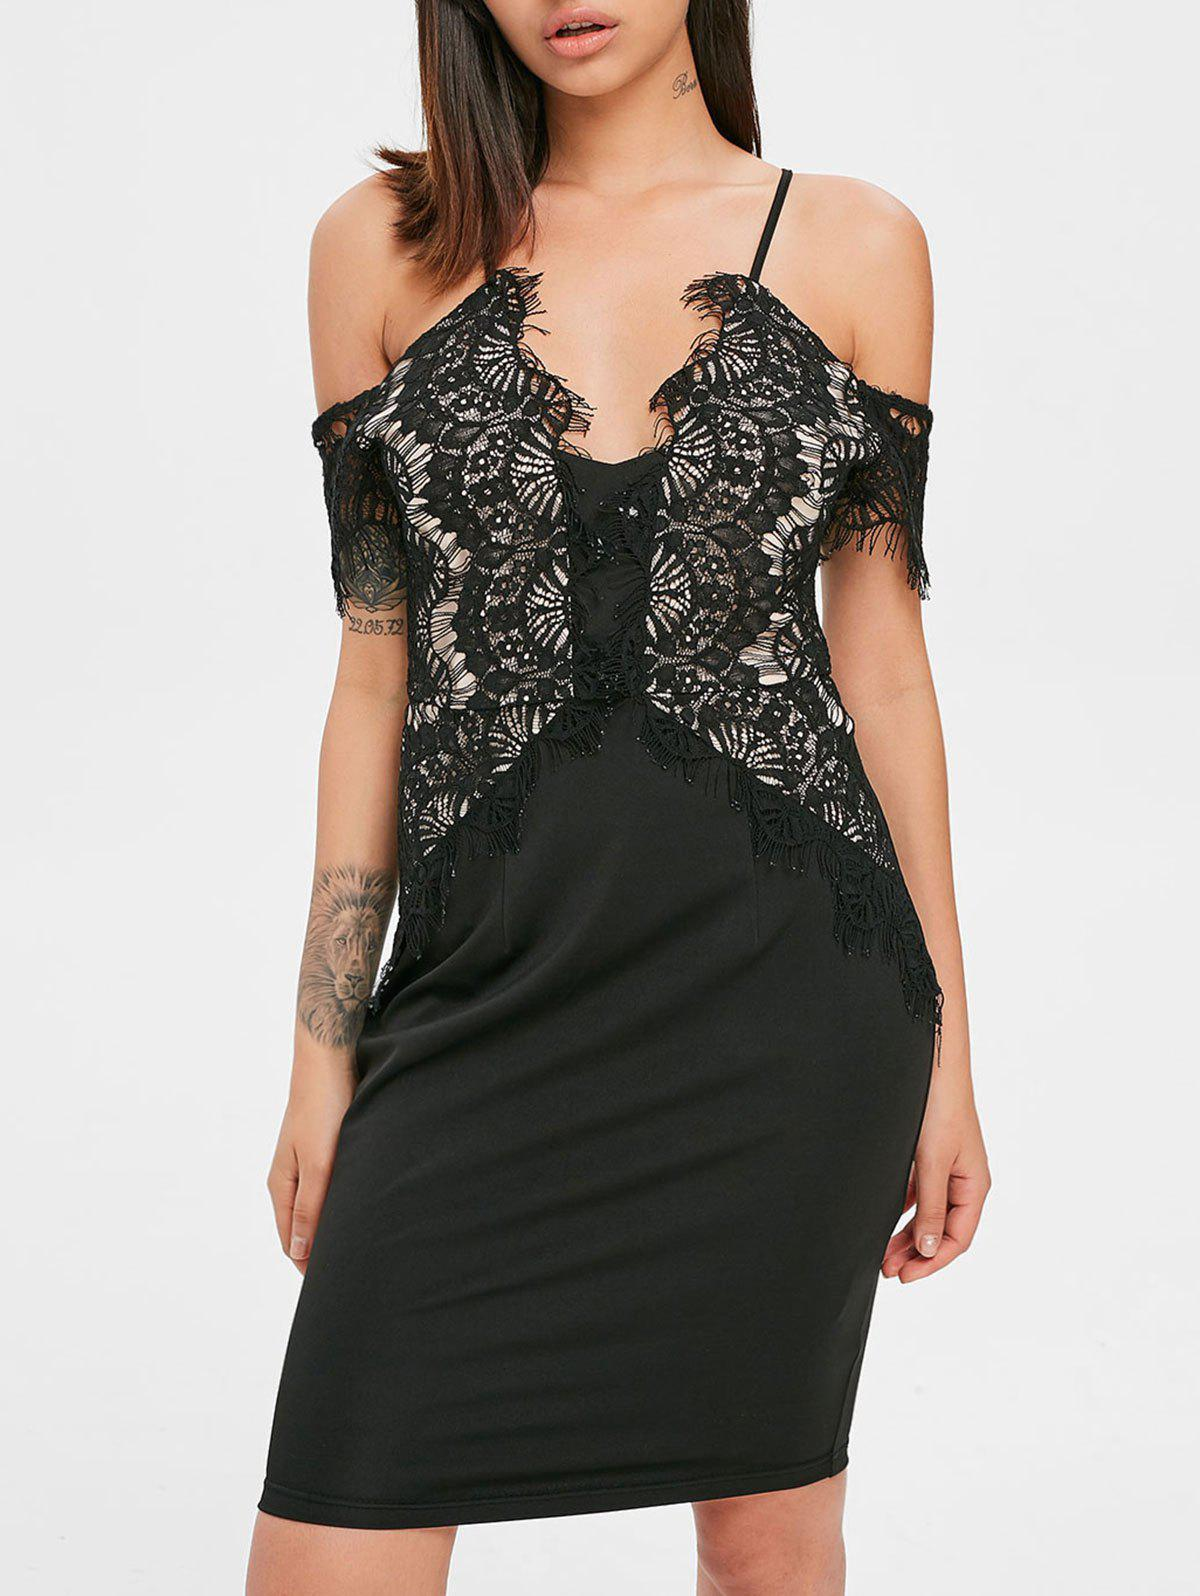 Store Lace Eyelash Criss Cross Back Dress